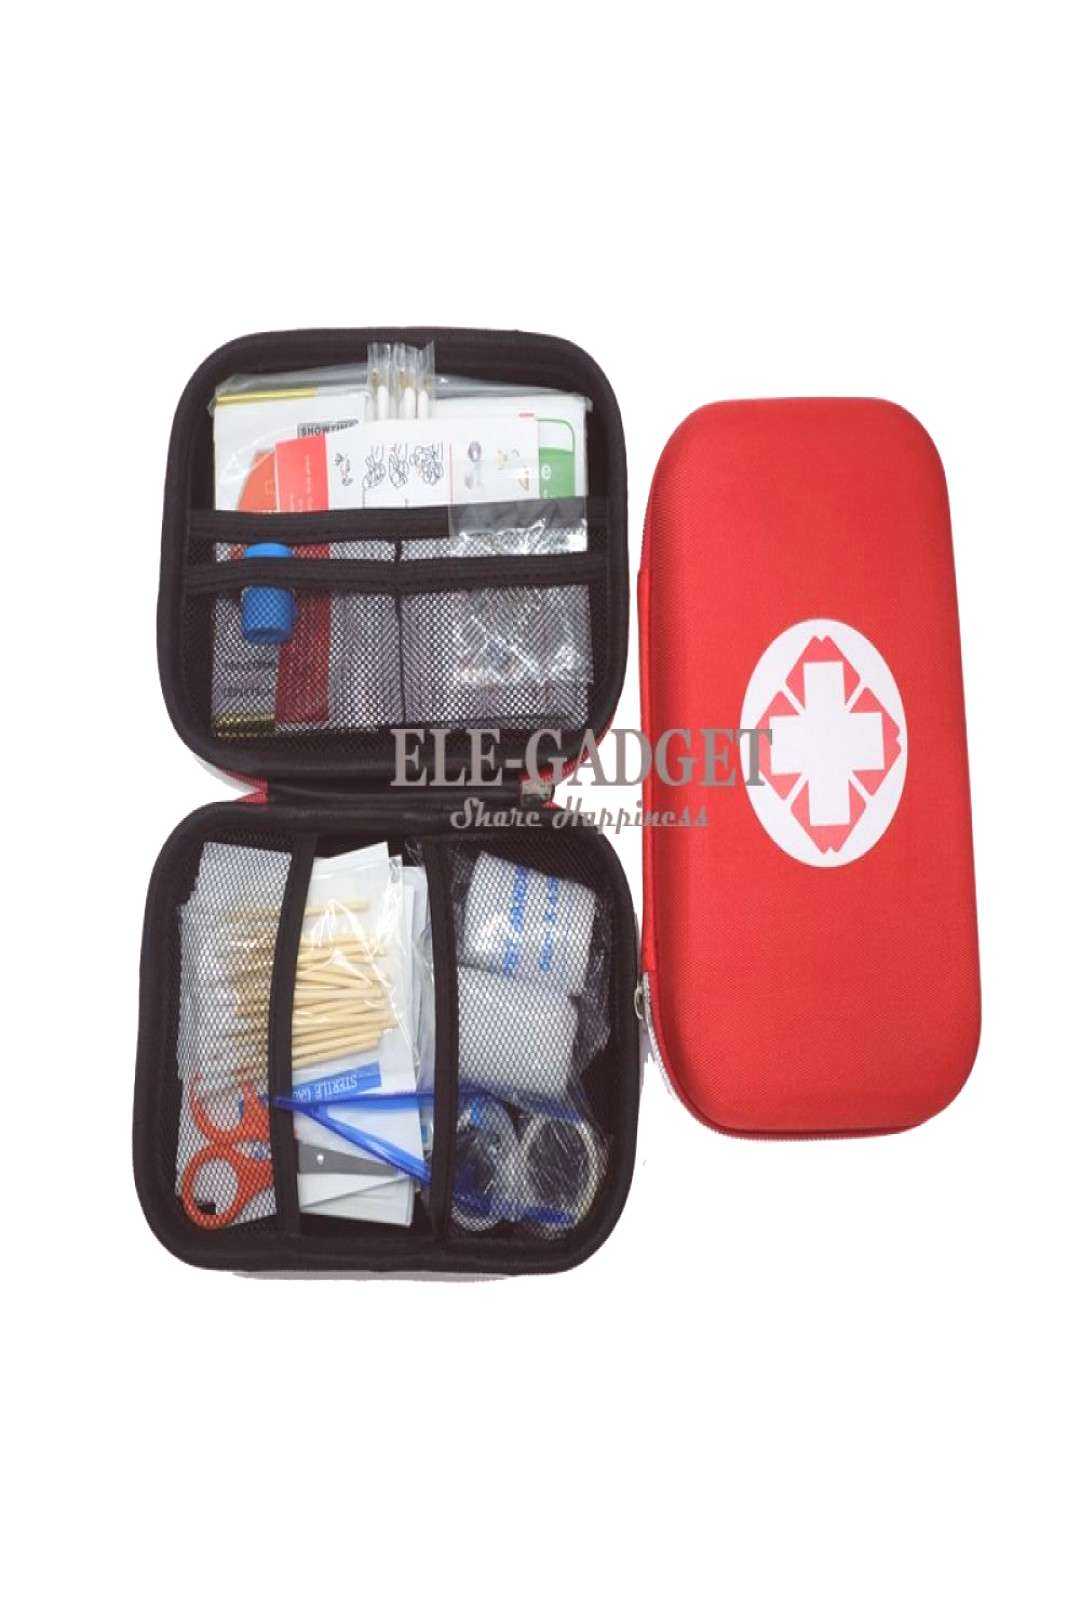 17 Items/93pcs Portable Travel First Aid Kits For Home Outdoor Sports Emergency Kit Emergency Medic